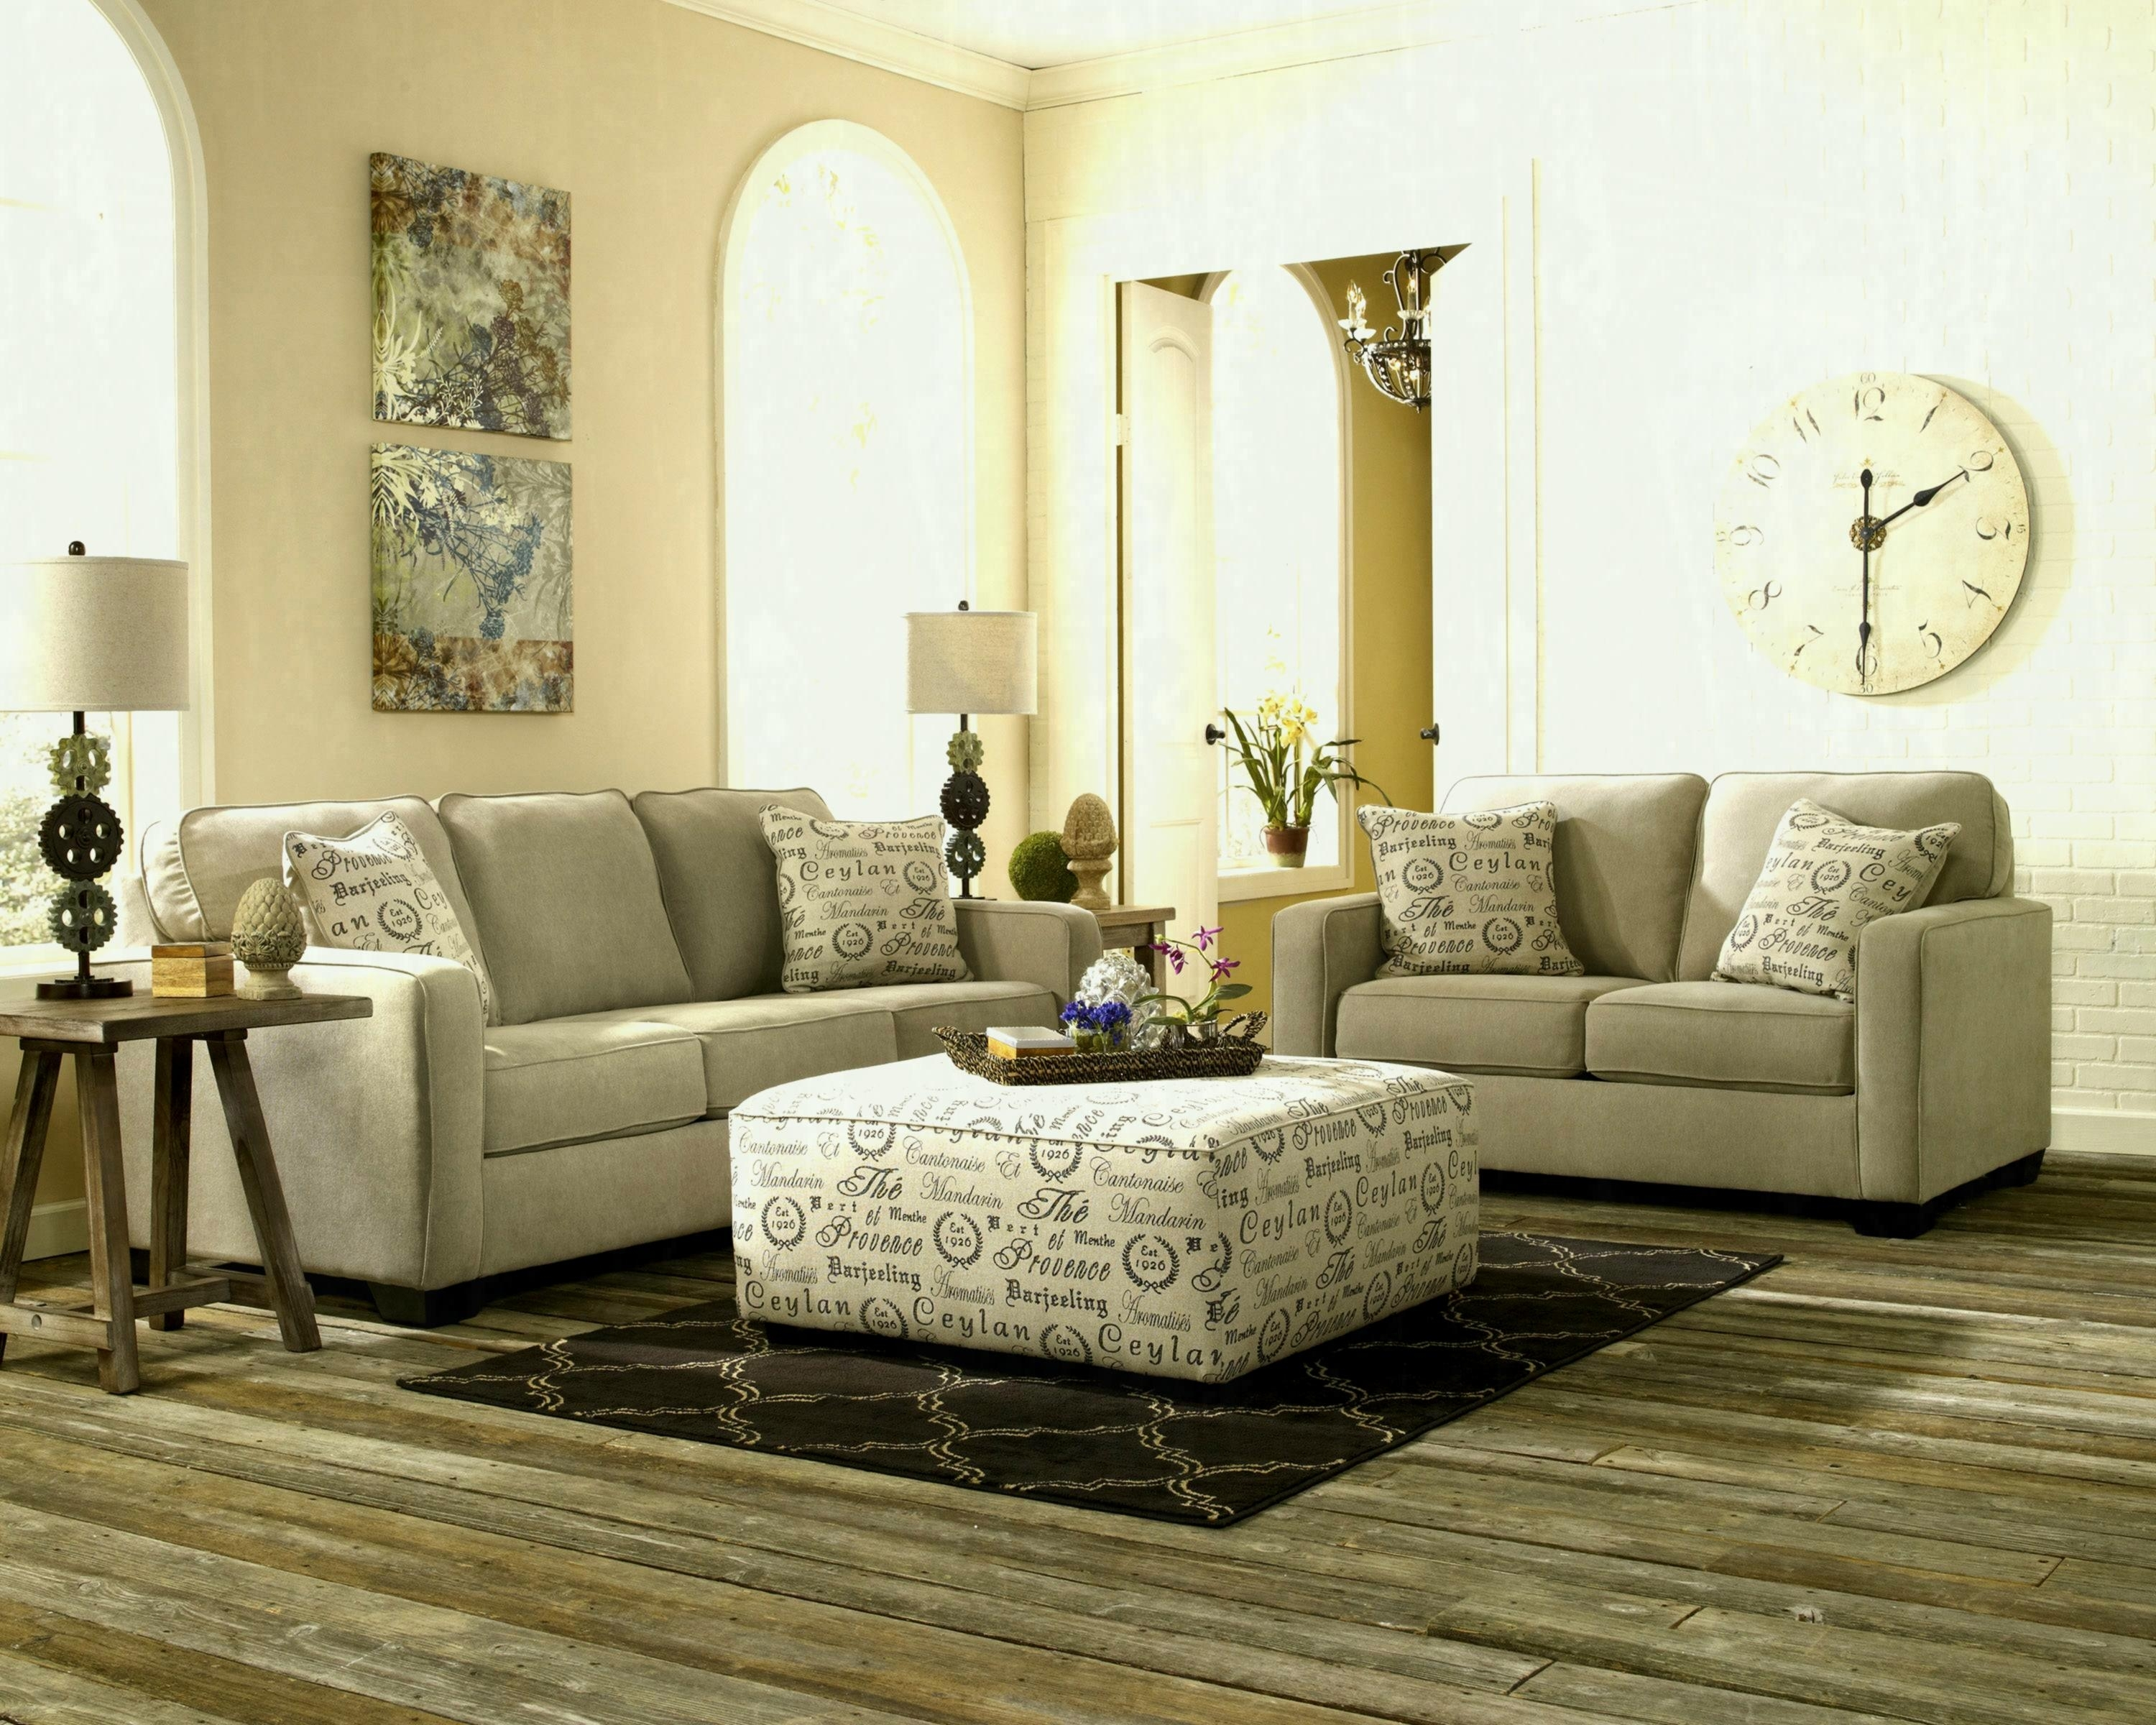 Added To Cart Aquarius Light Grey Piece Sectional W Raf Chaise Regarding Aquarius Light Grey 2 Piece Sectionals With Laf Chaise (View 20 of 25)